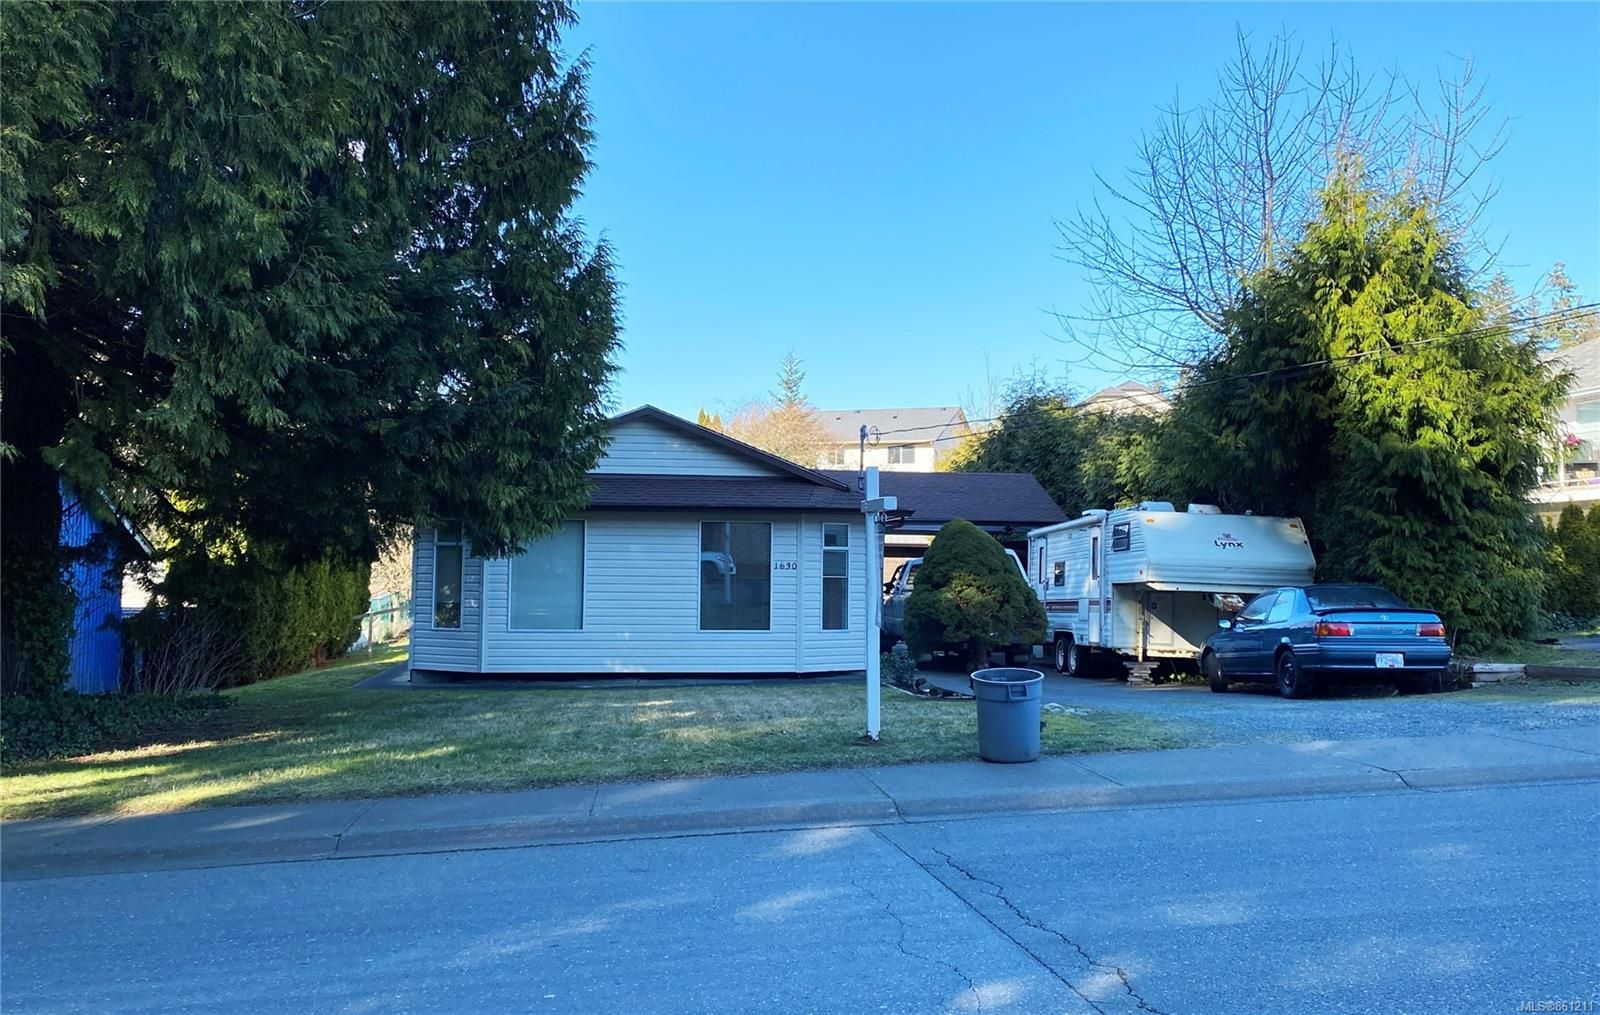 Main Photo: 1630 E 6th St in : CV Courtenay East House for sale (Comox Valley)  : MLS®# 861211